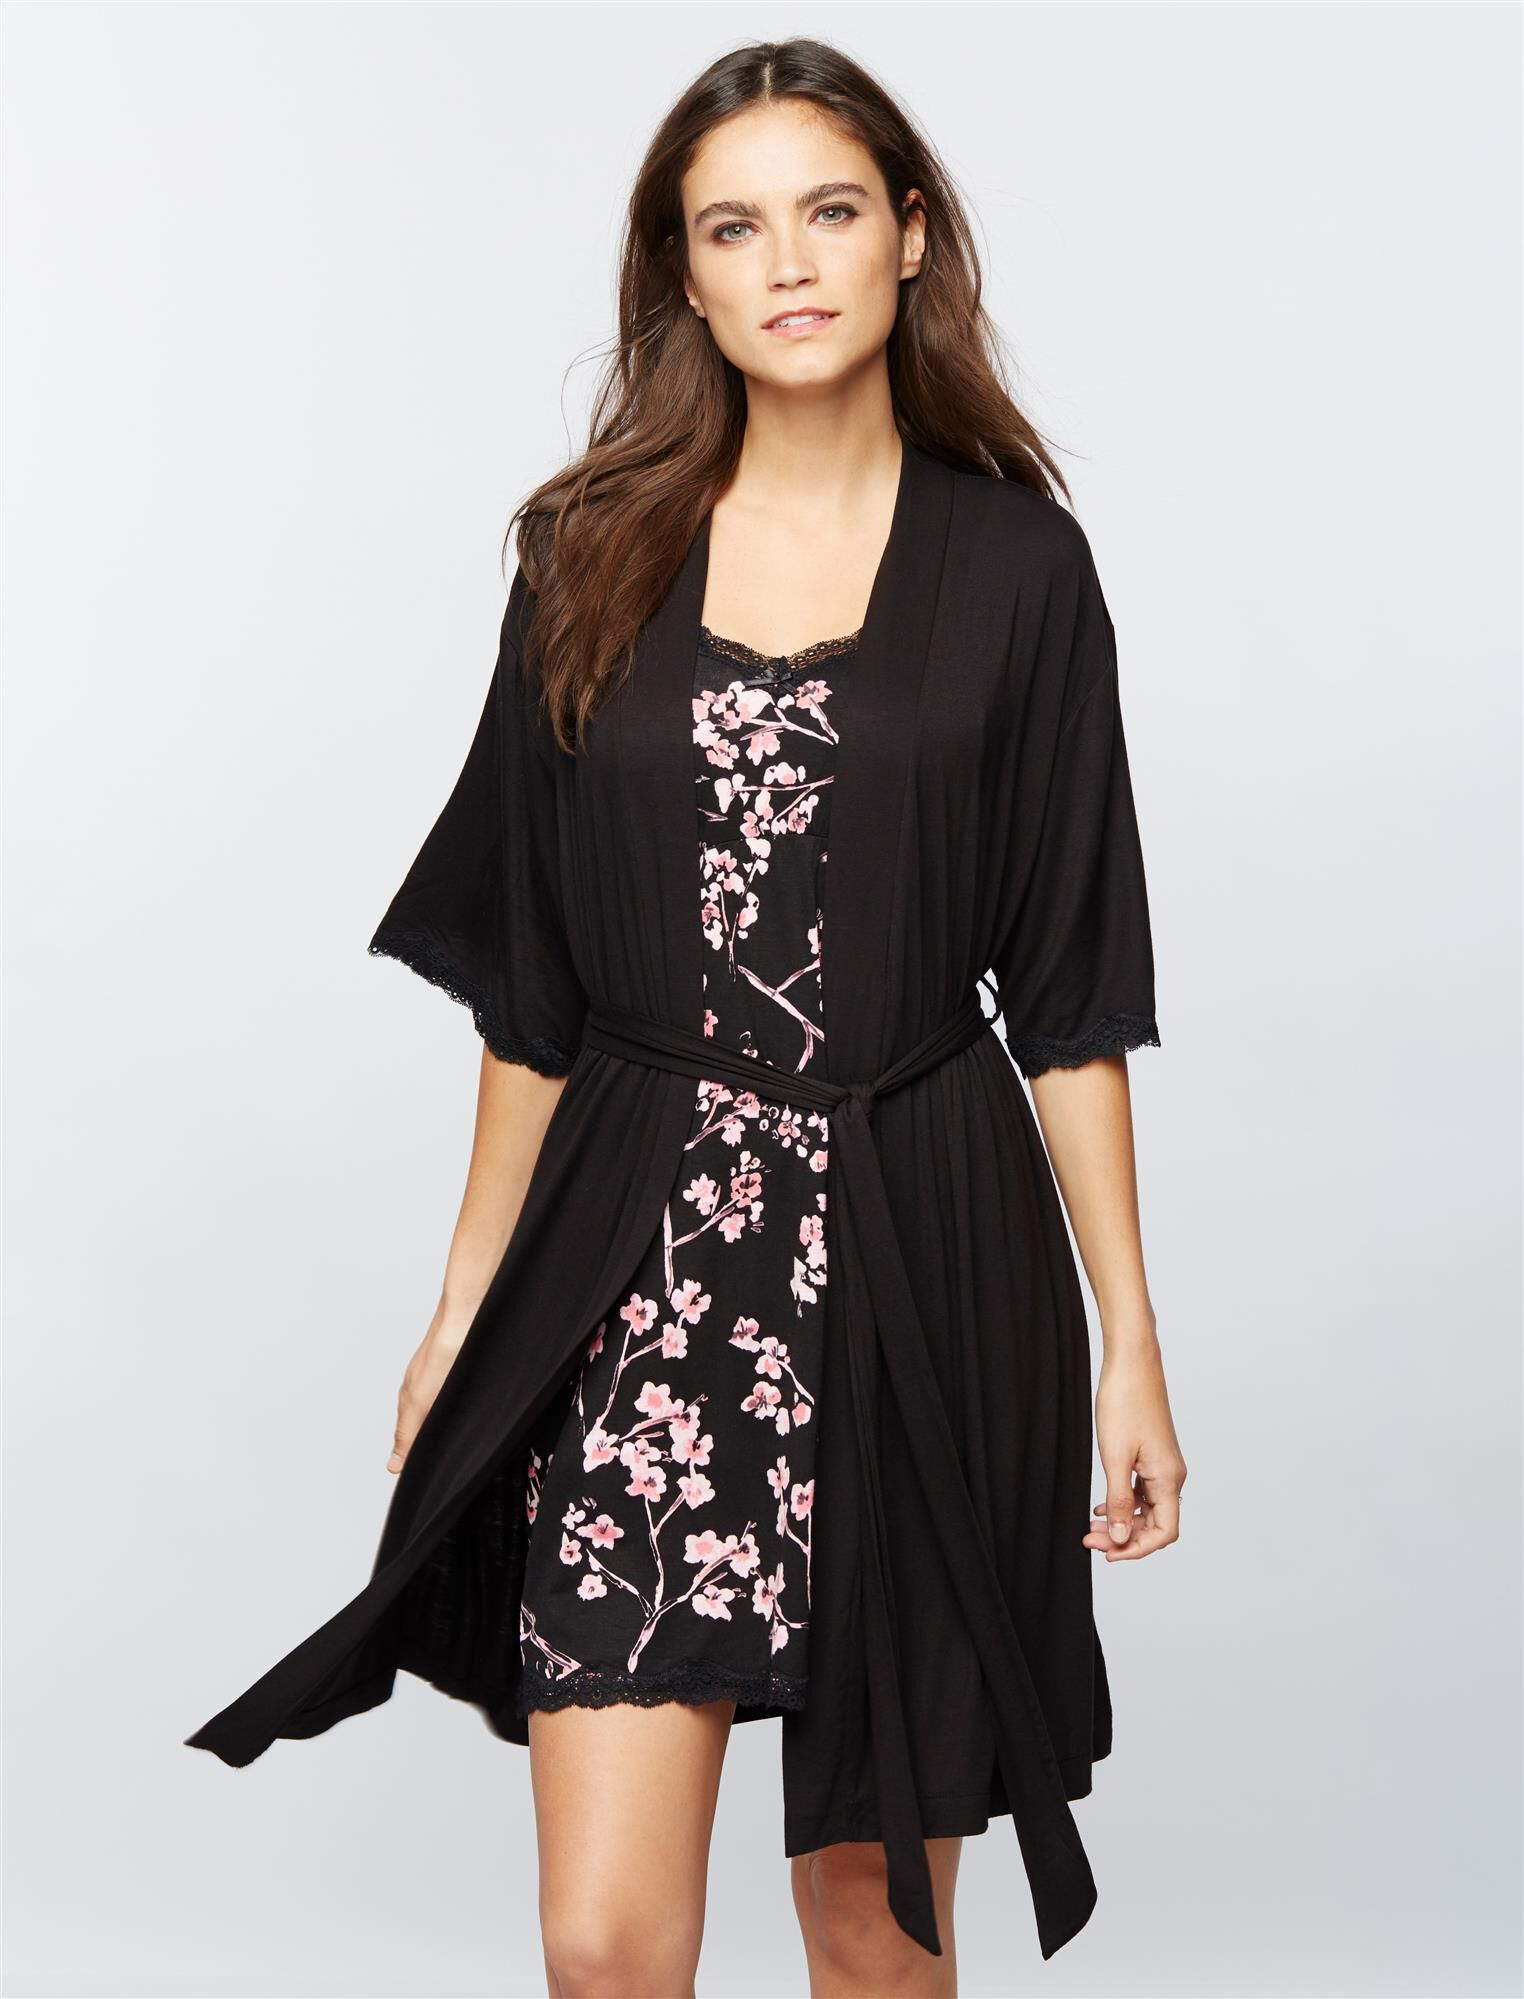 Clip Down Nursing Nightgown and Robe- Floral